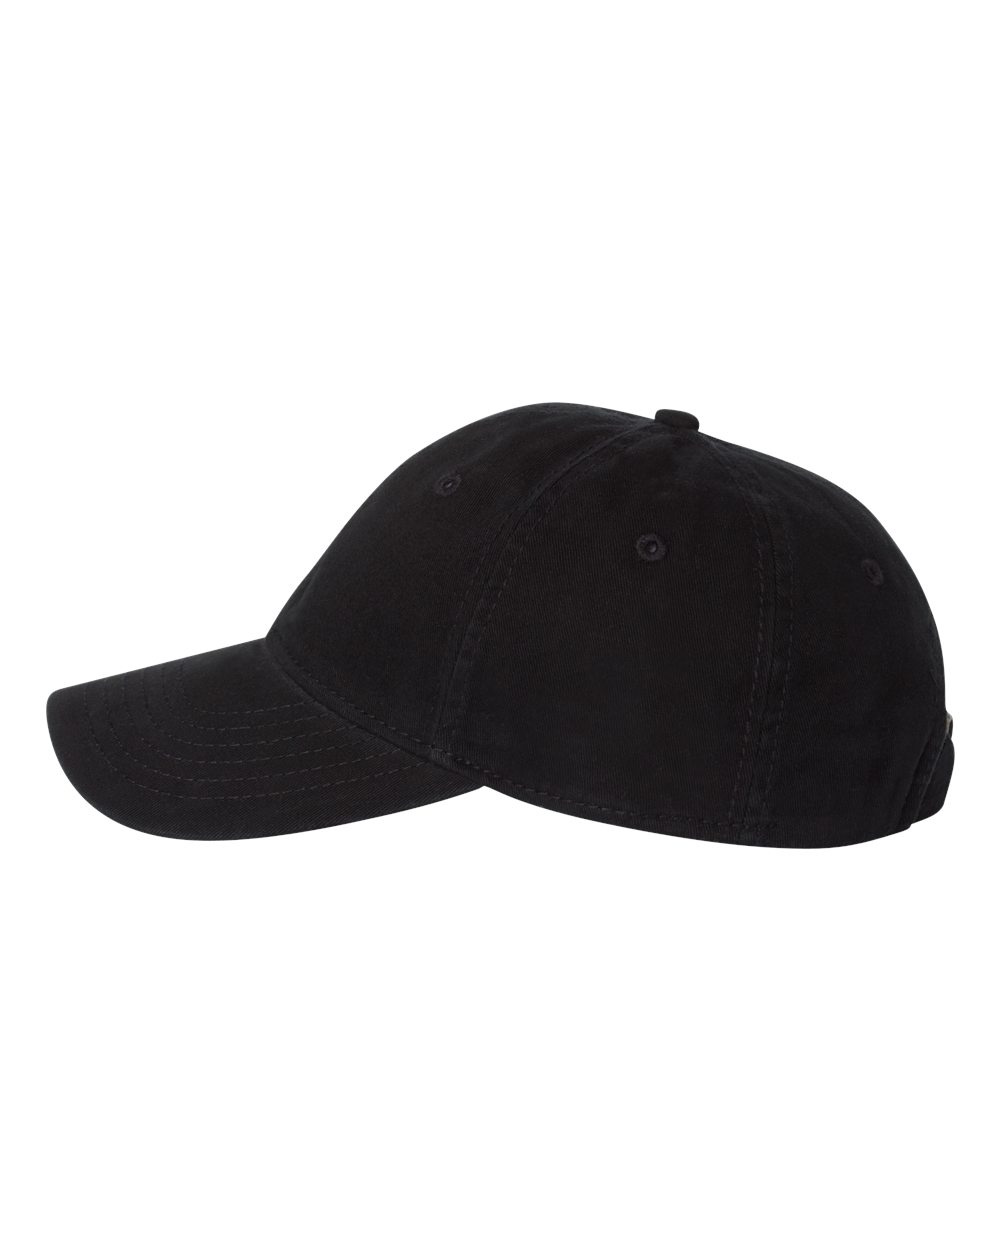 "Sportsman Cap - AH35 ""The Cozy"" Unstructured Cap"